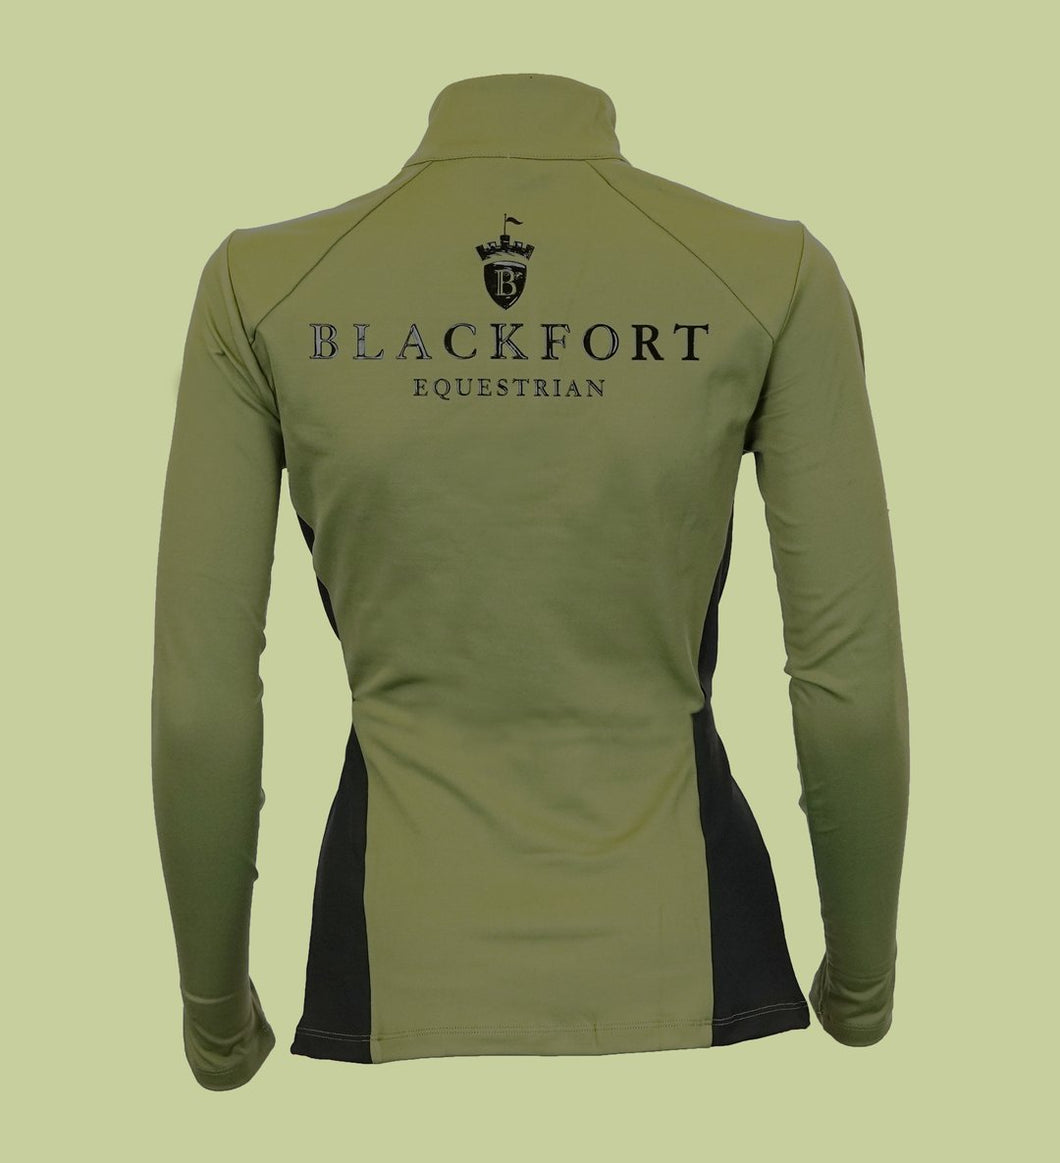 Blackfort Equestrian Khaki & Black Lace Base Layer